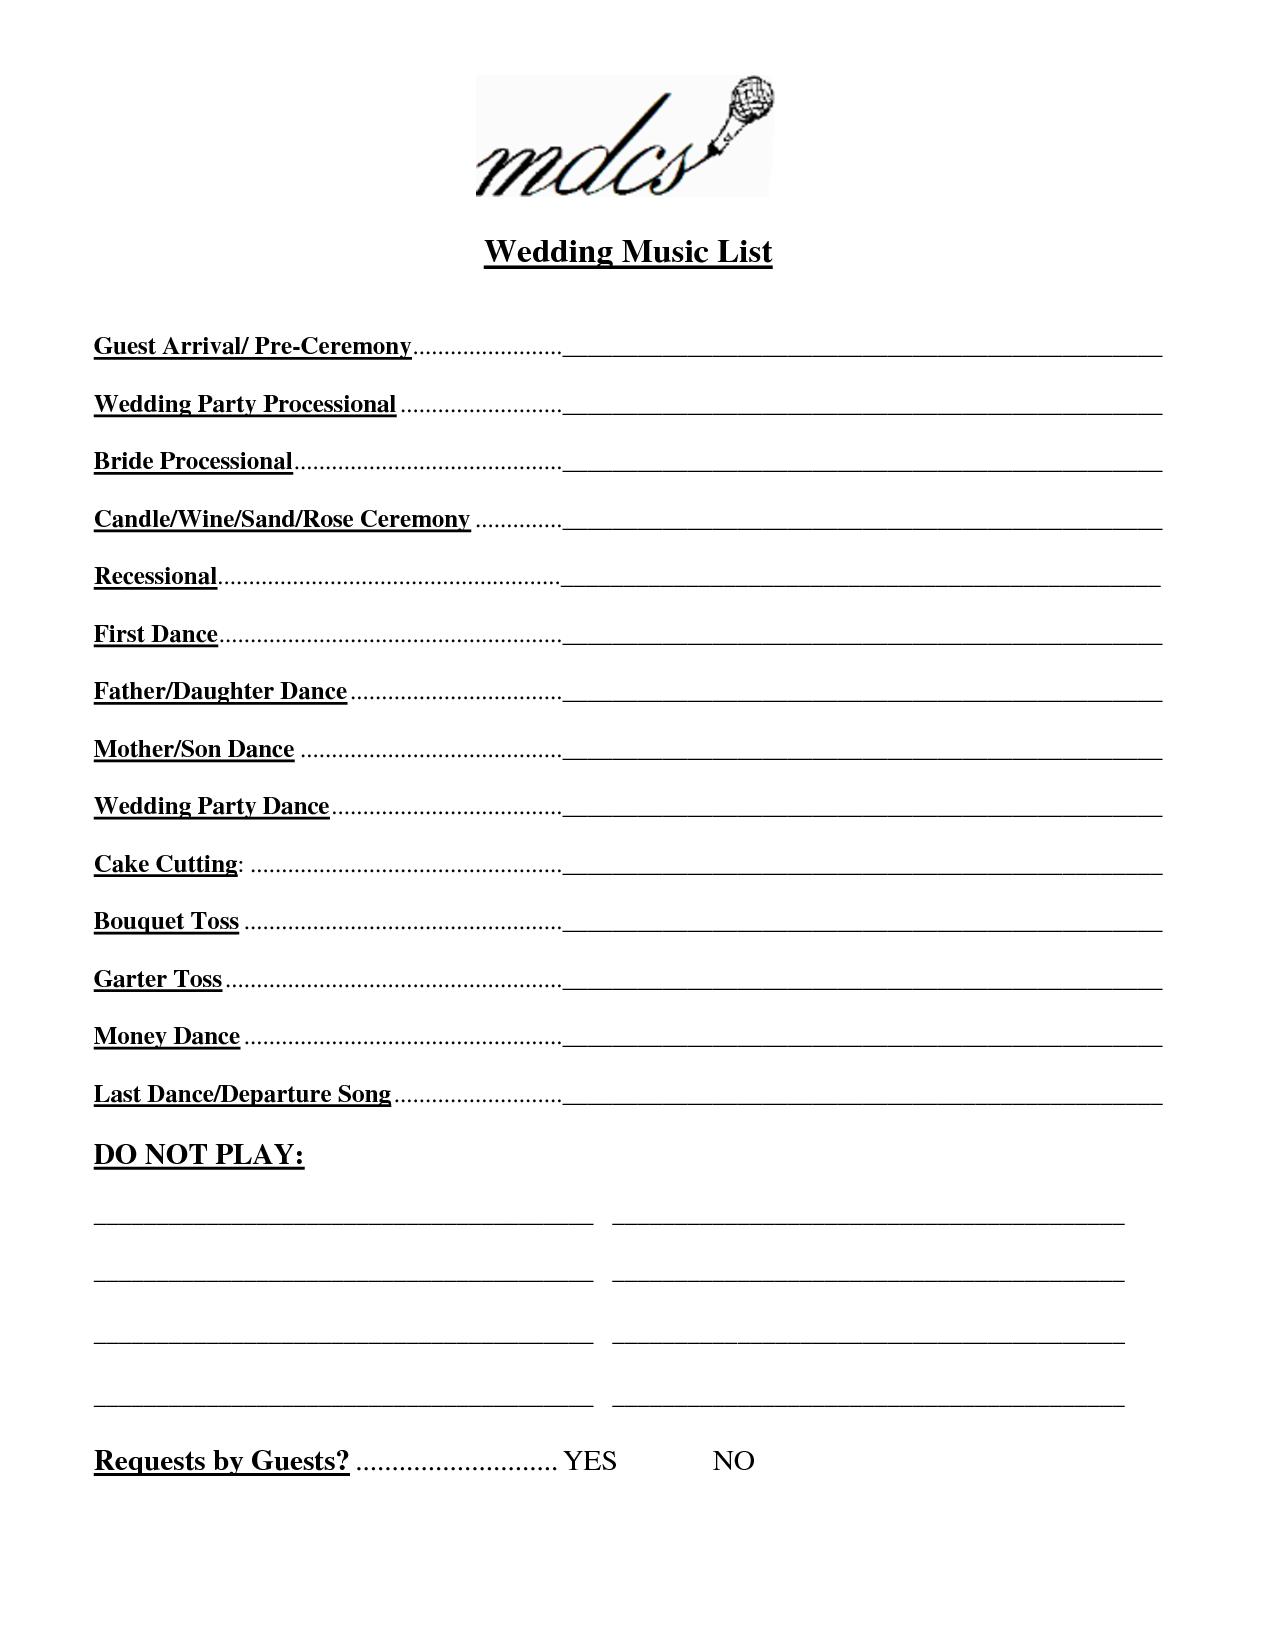 Wedding Party List Template Free | FosterHaley Wedding Music List ...